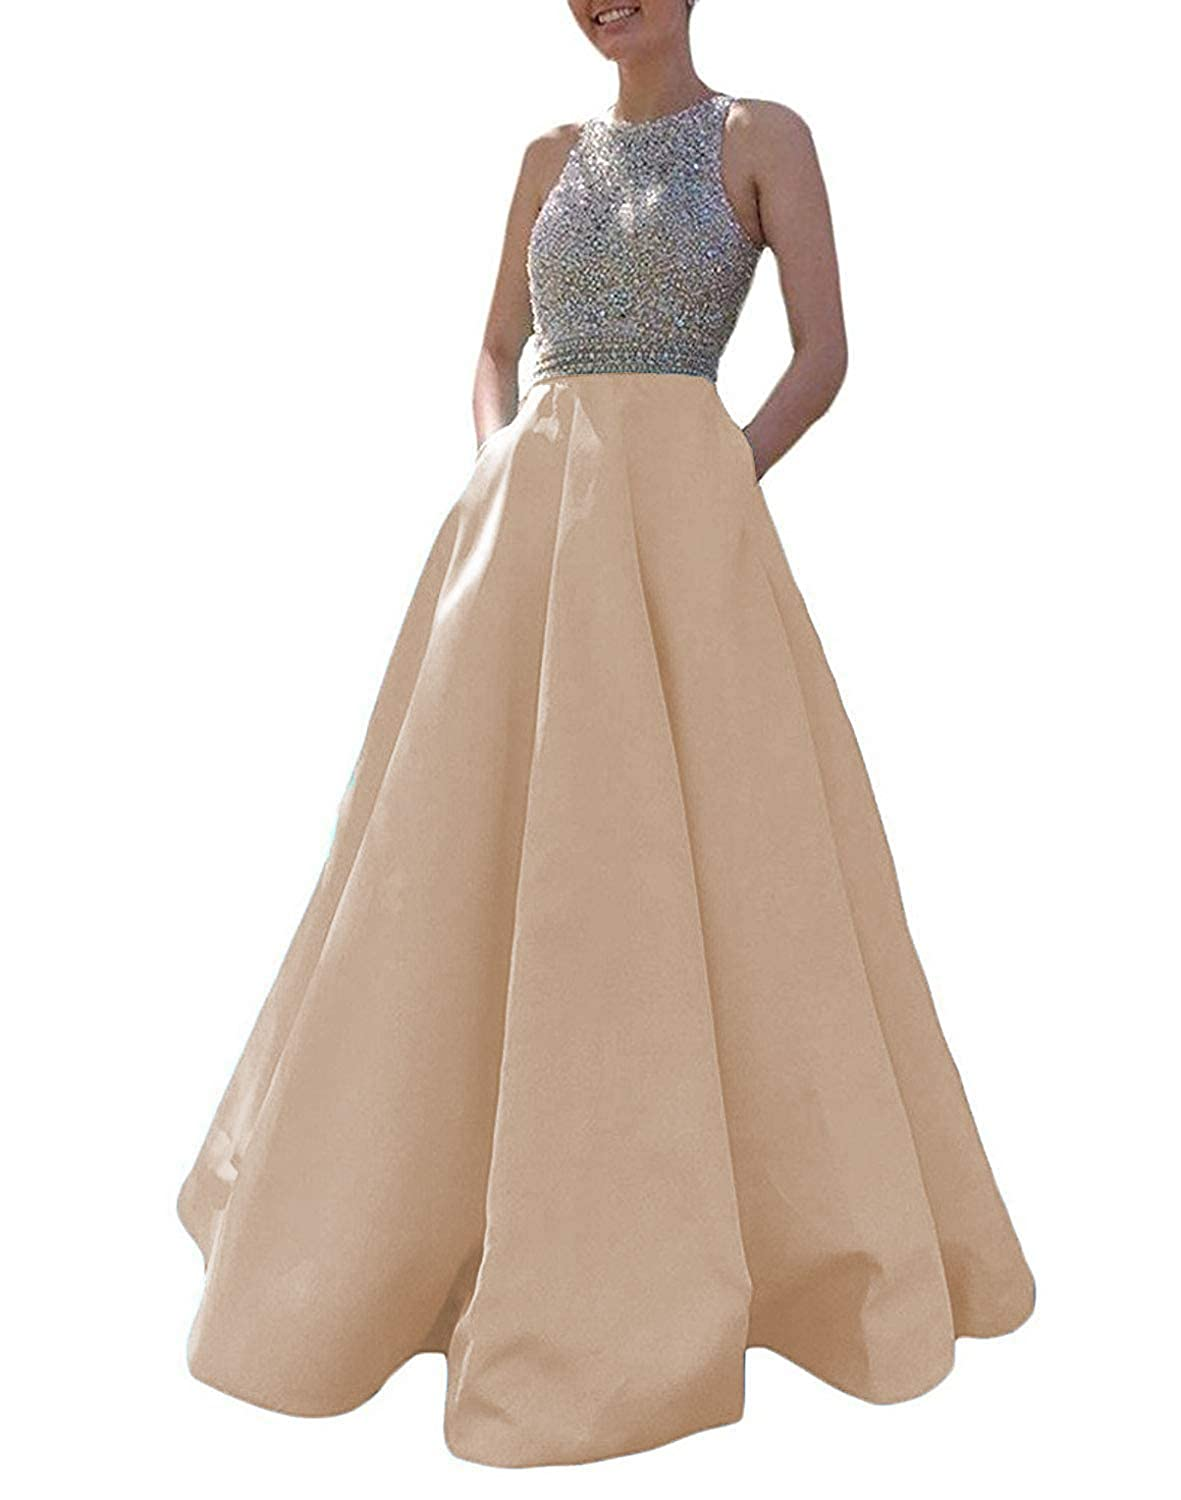 Champagne Promworld Women's Crystal Beaded Prom Dress Long Satin A Line Open Back Evening Party Dress with Pocket